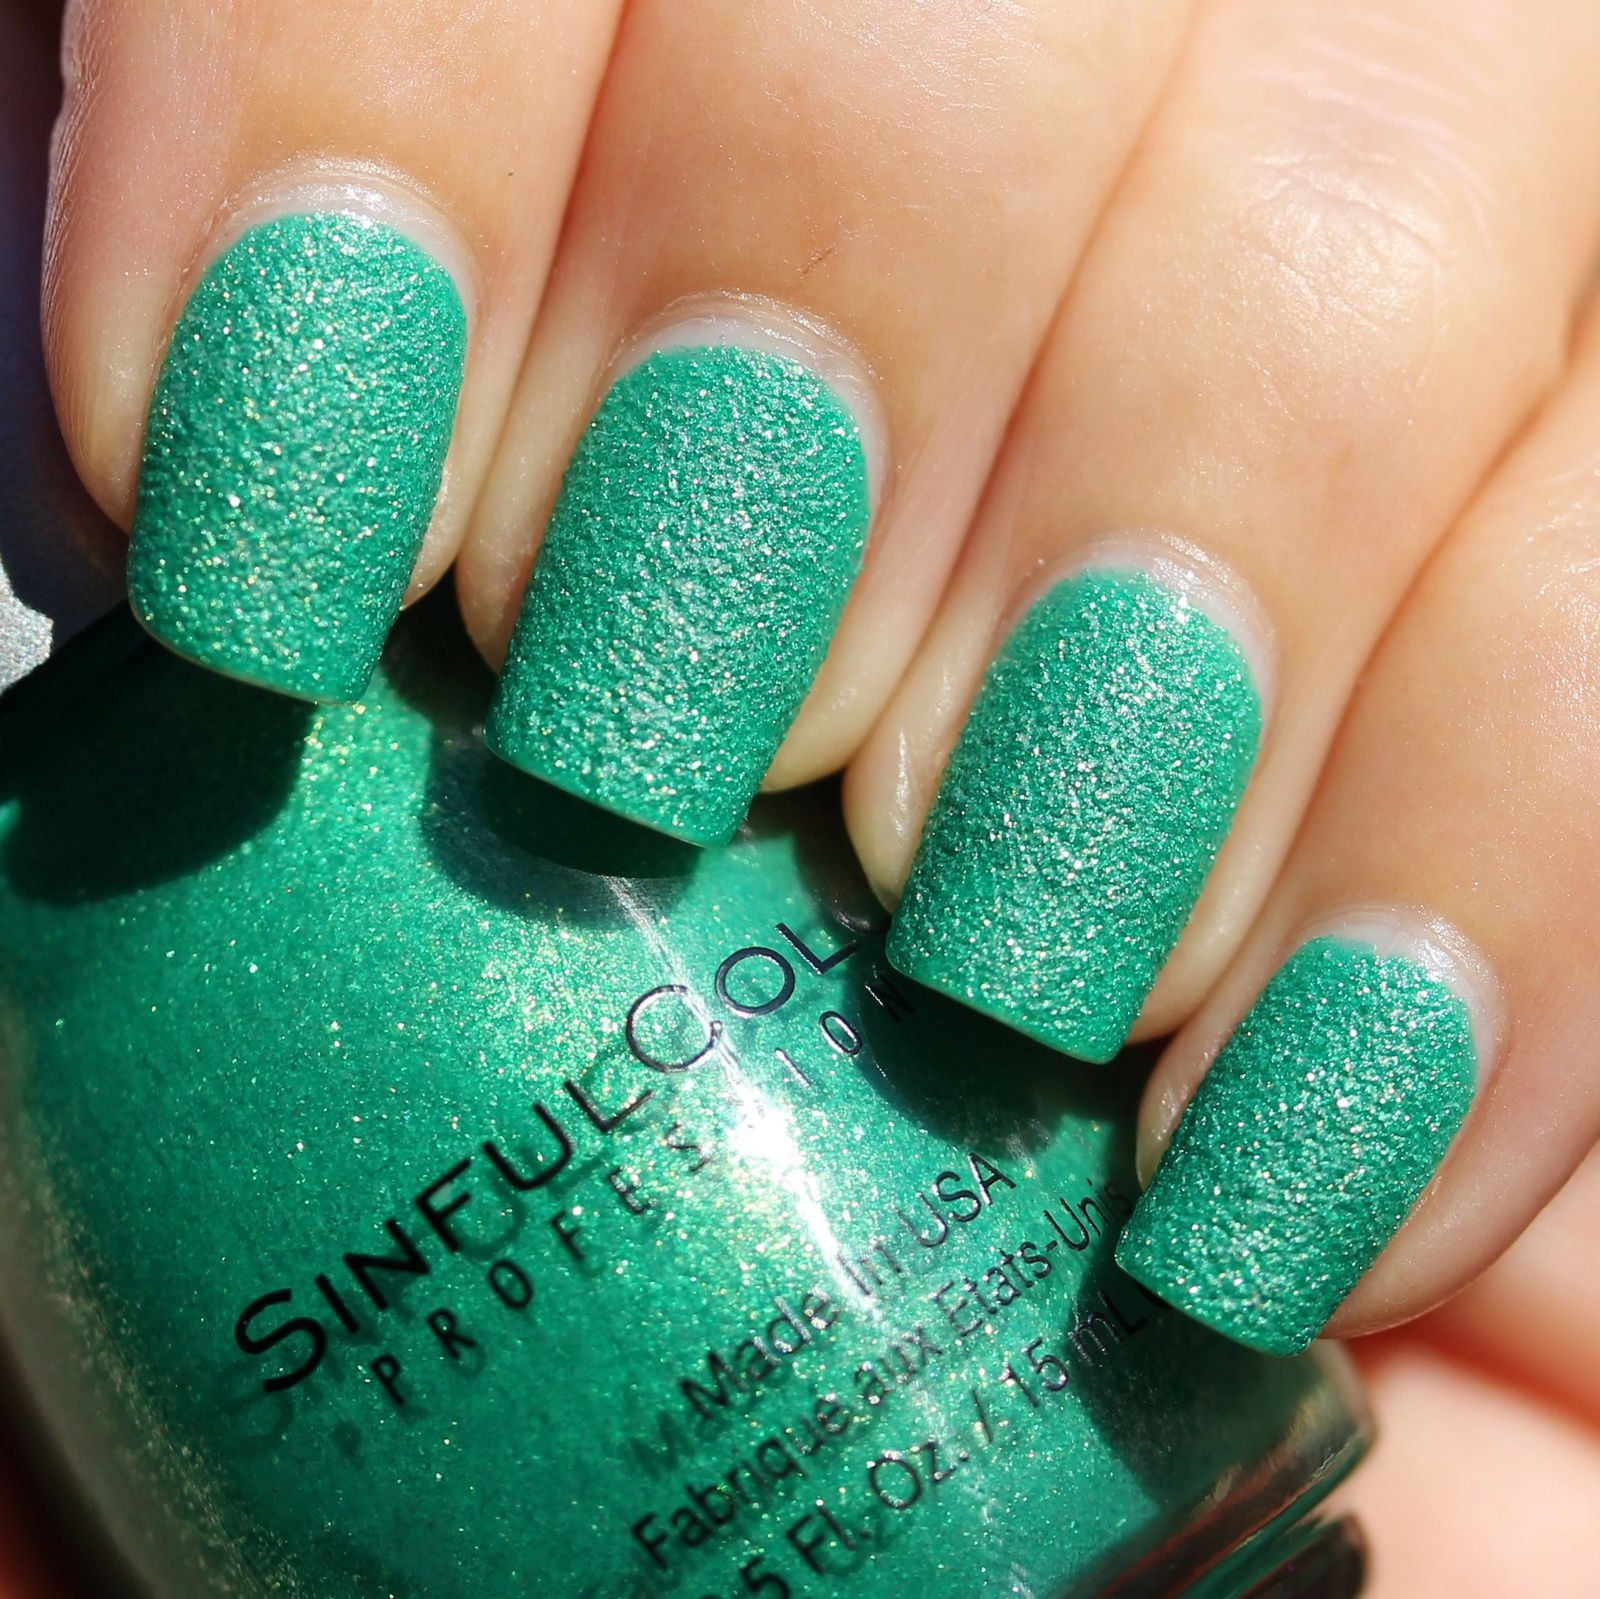 Essie Proteined Base Coat / Sinful Colors Emerald Envy